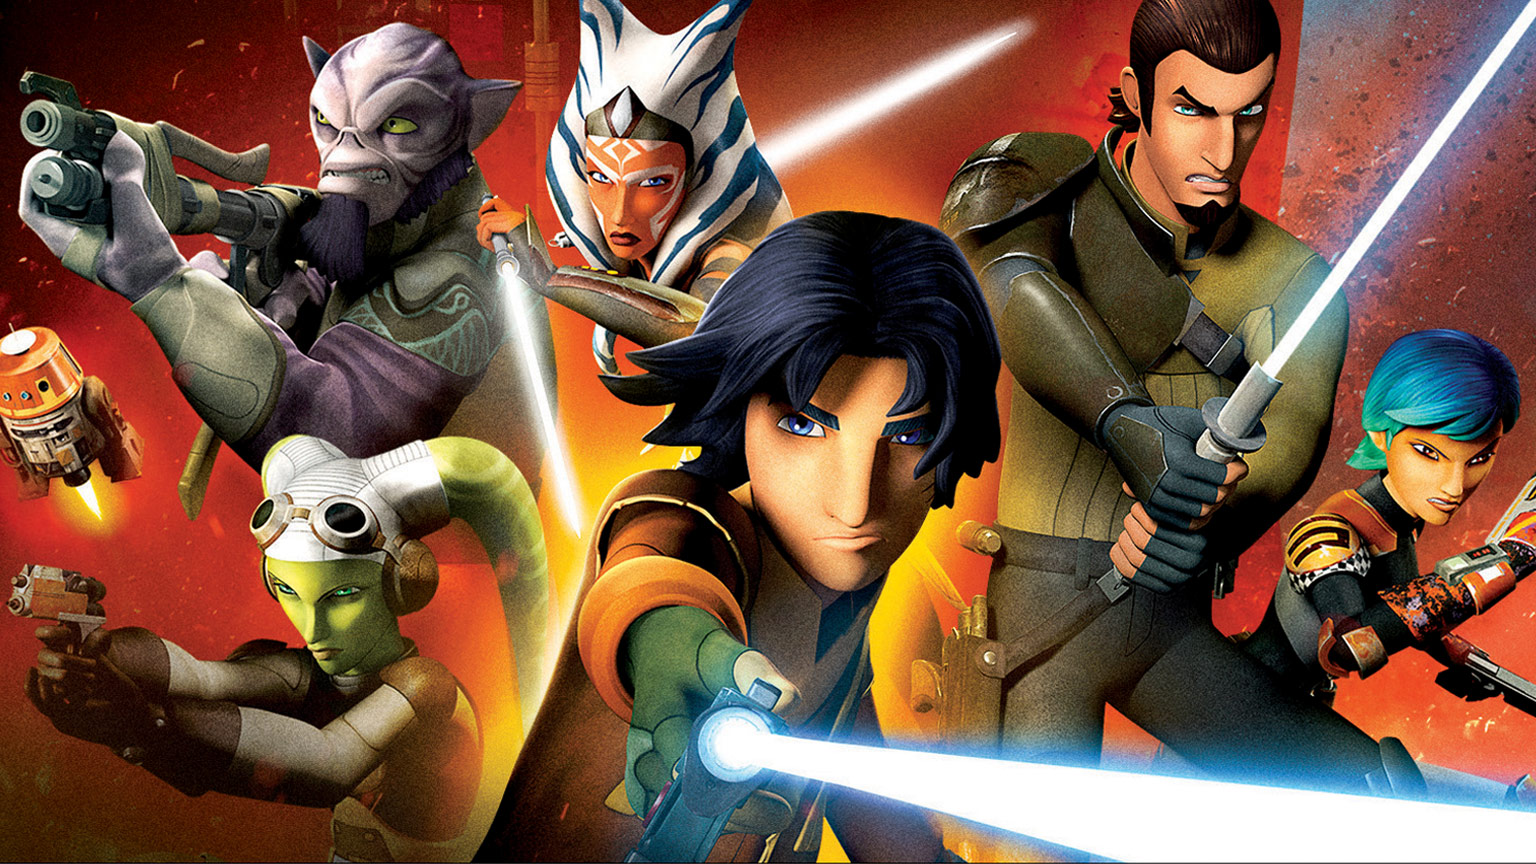 Catch up on Star Wars Rebels